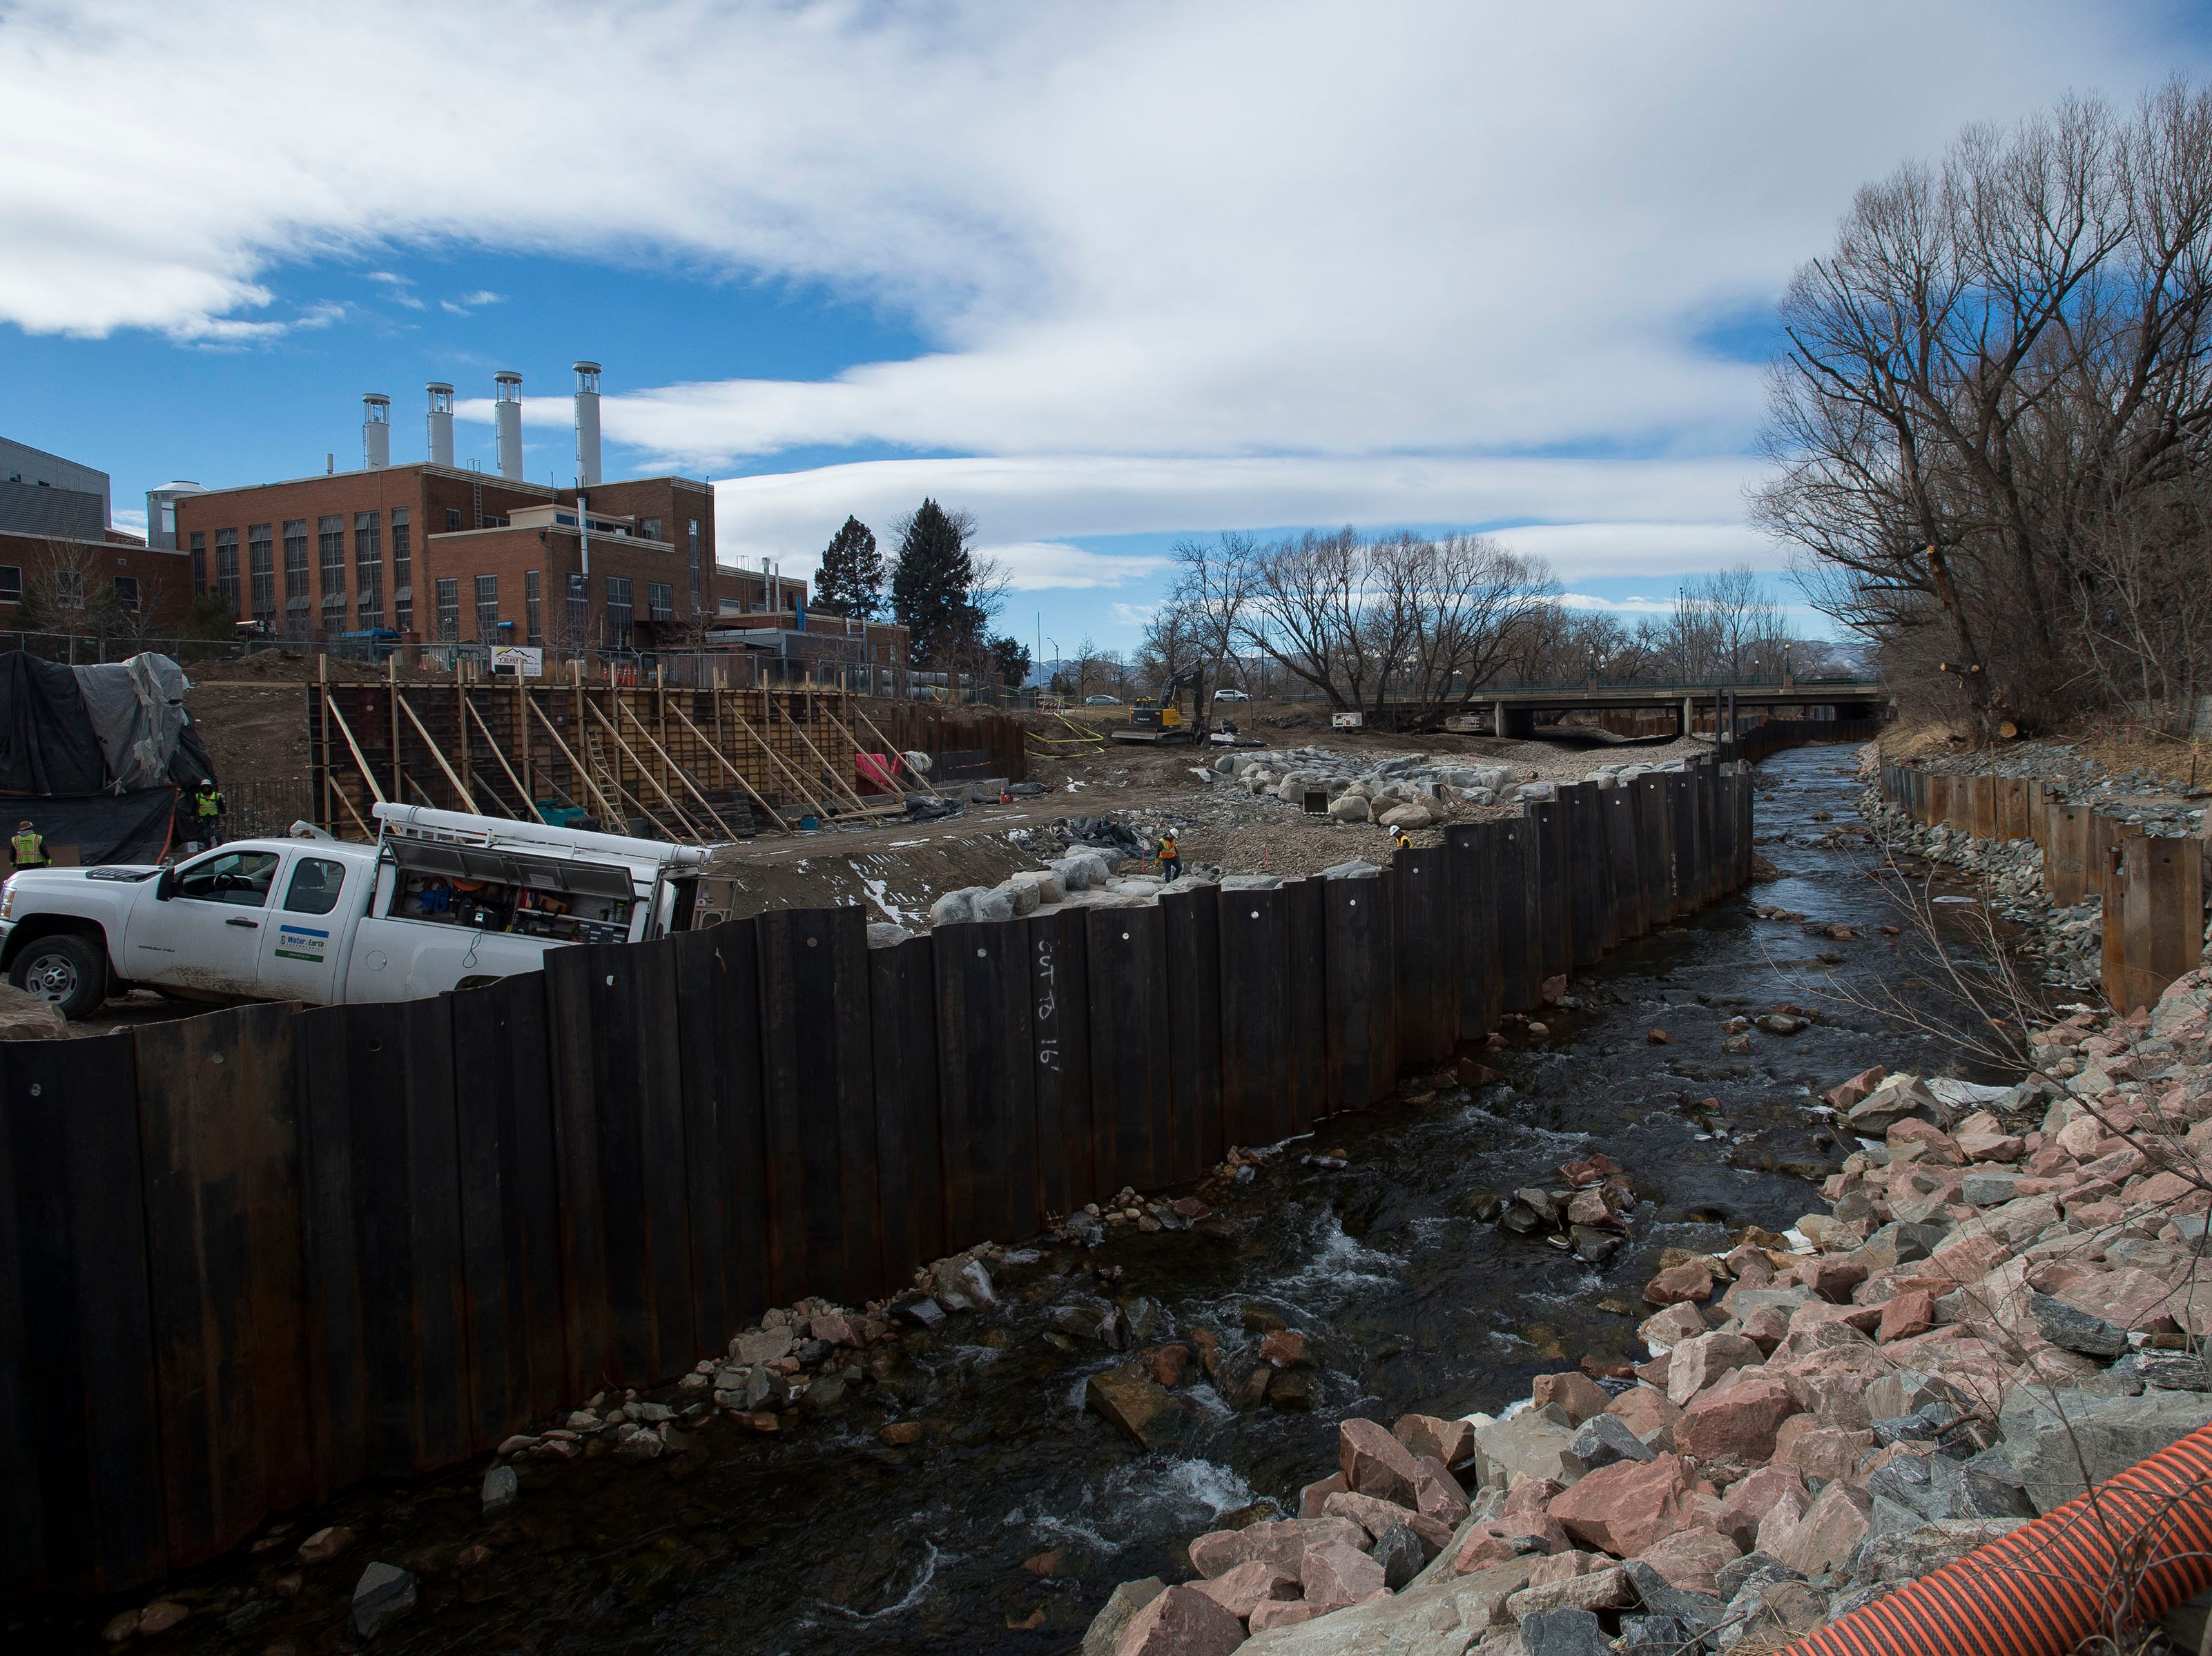 The low-running river is diverted from the area under construction while construction crews build out the South side of the whitewater park on Wednesday, Jan. 23, 2019, on the Cache la Poudre River, just South of North College Avenue in Fort Collins, Colo.